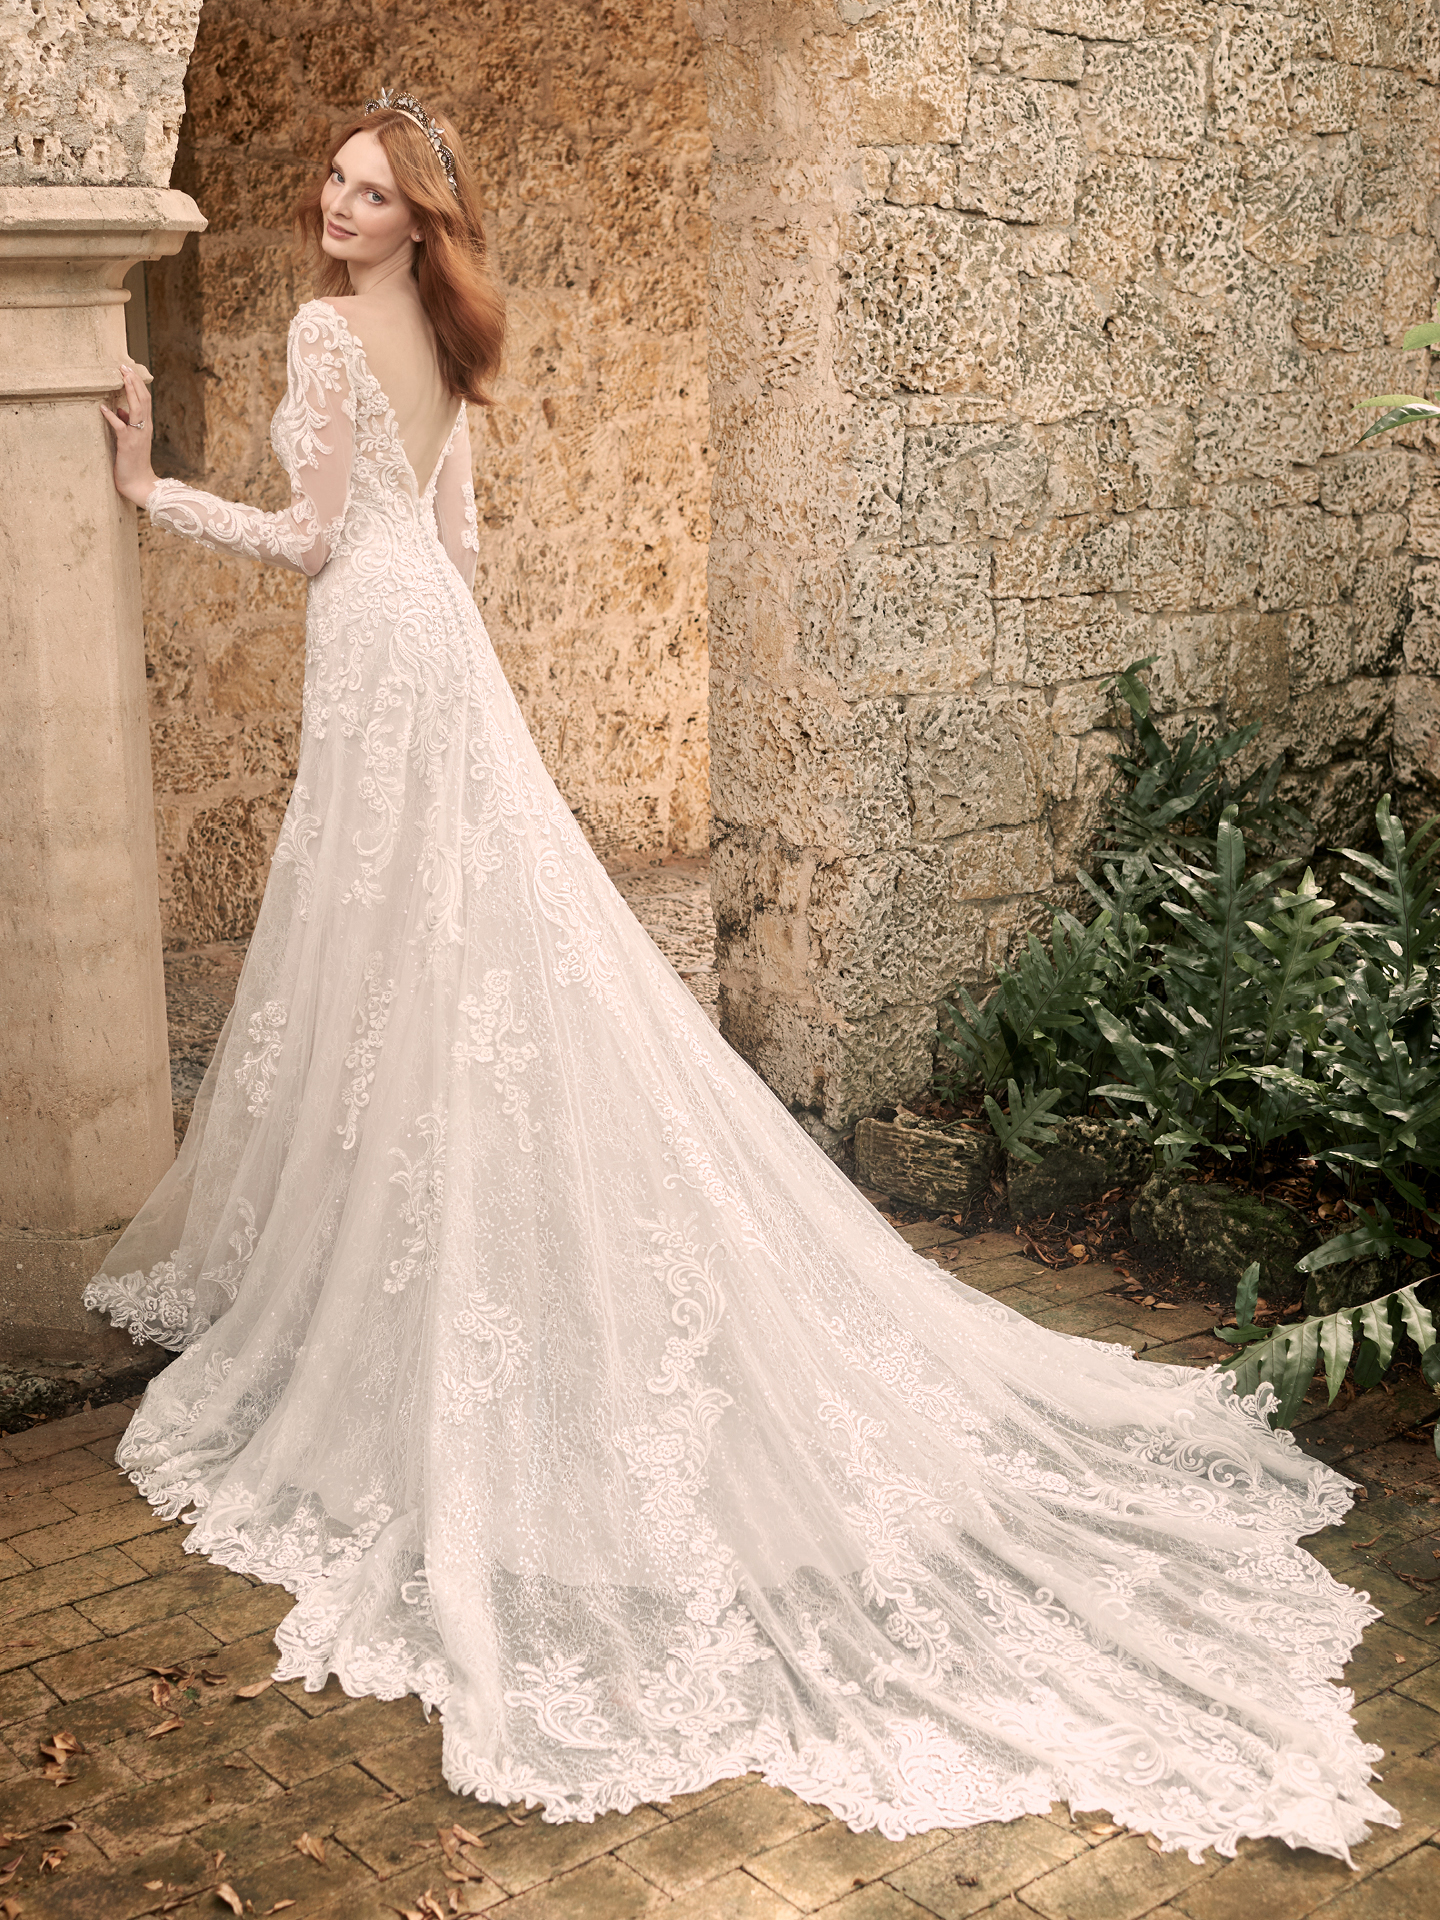 Model Wearing Illusion Lace Sleeve Wedding Gown Called Johanna by Maggie Sottero